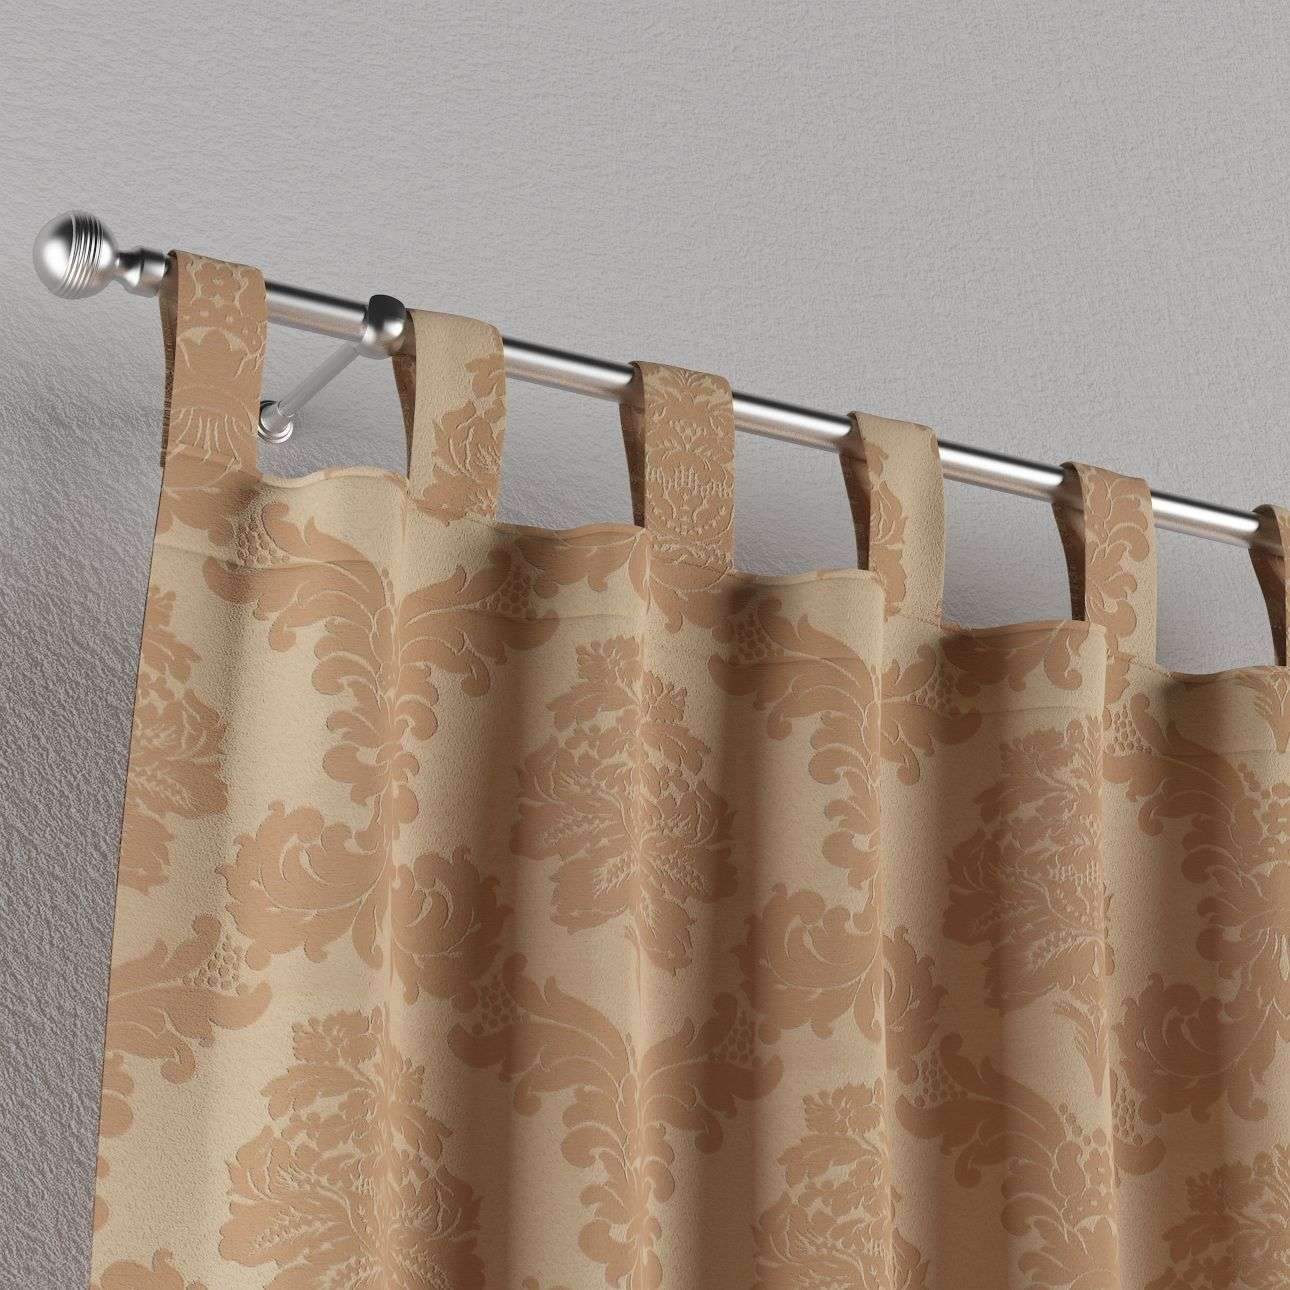 Tab top curtains 130 × 260 cm (51 × 102 inch) in collection Damasco, fabric: 613-04